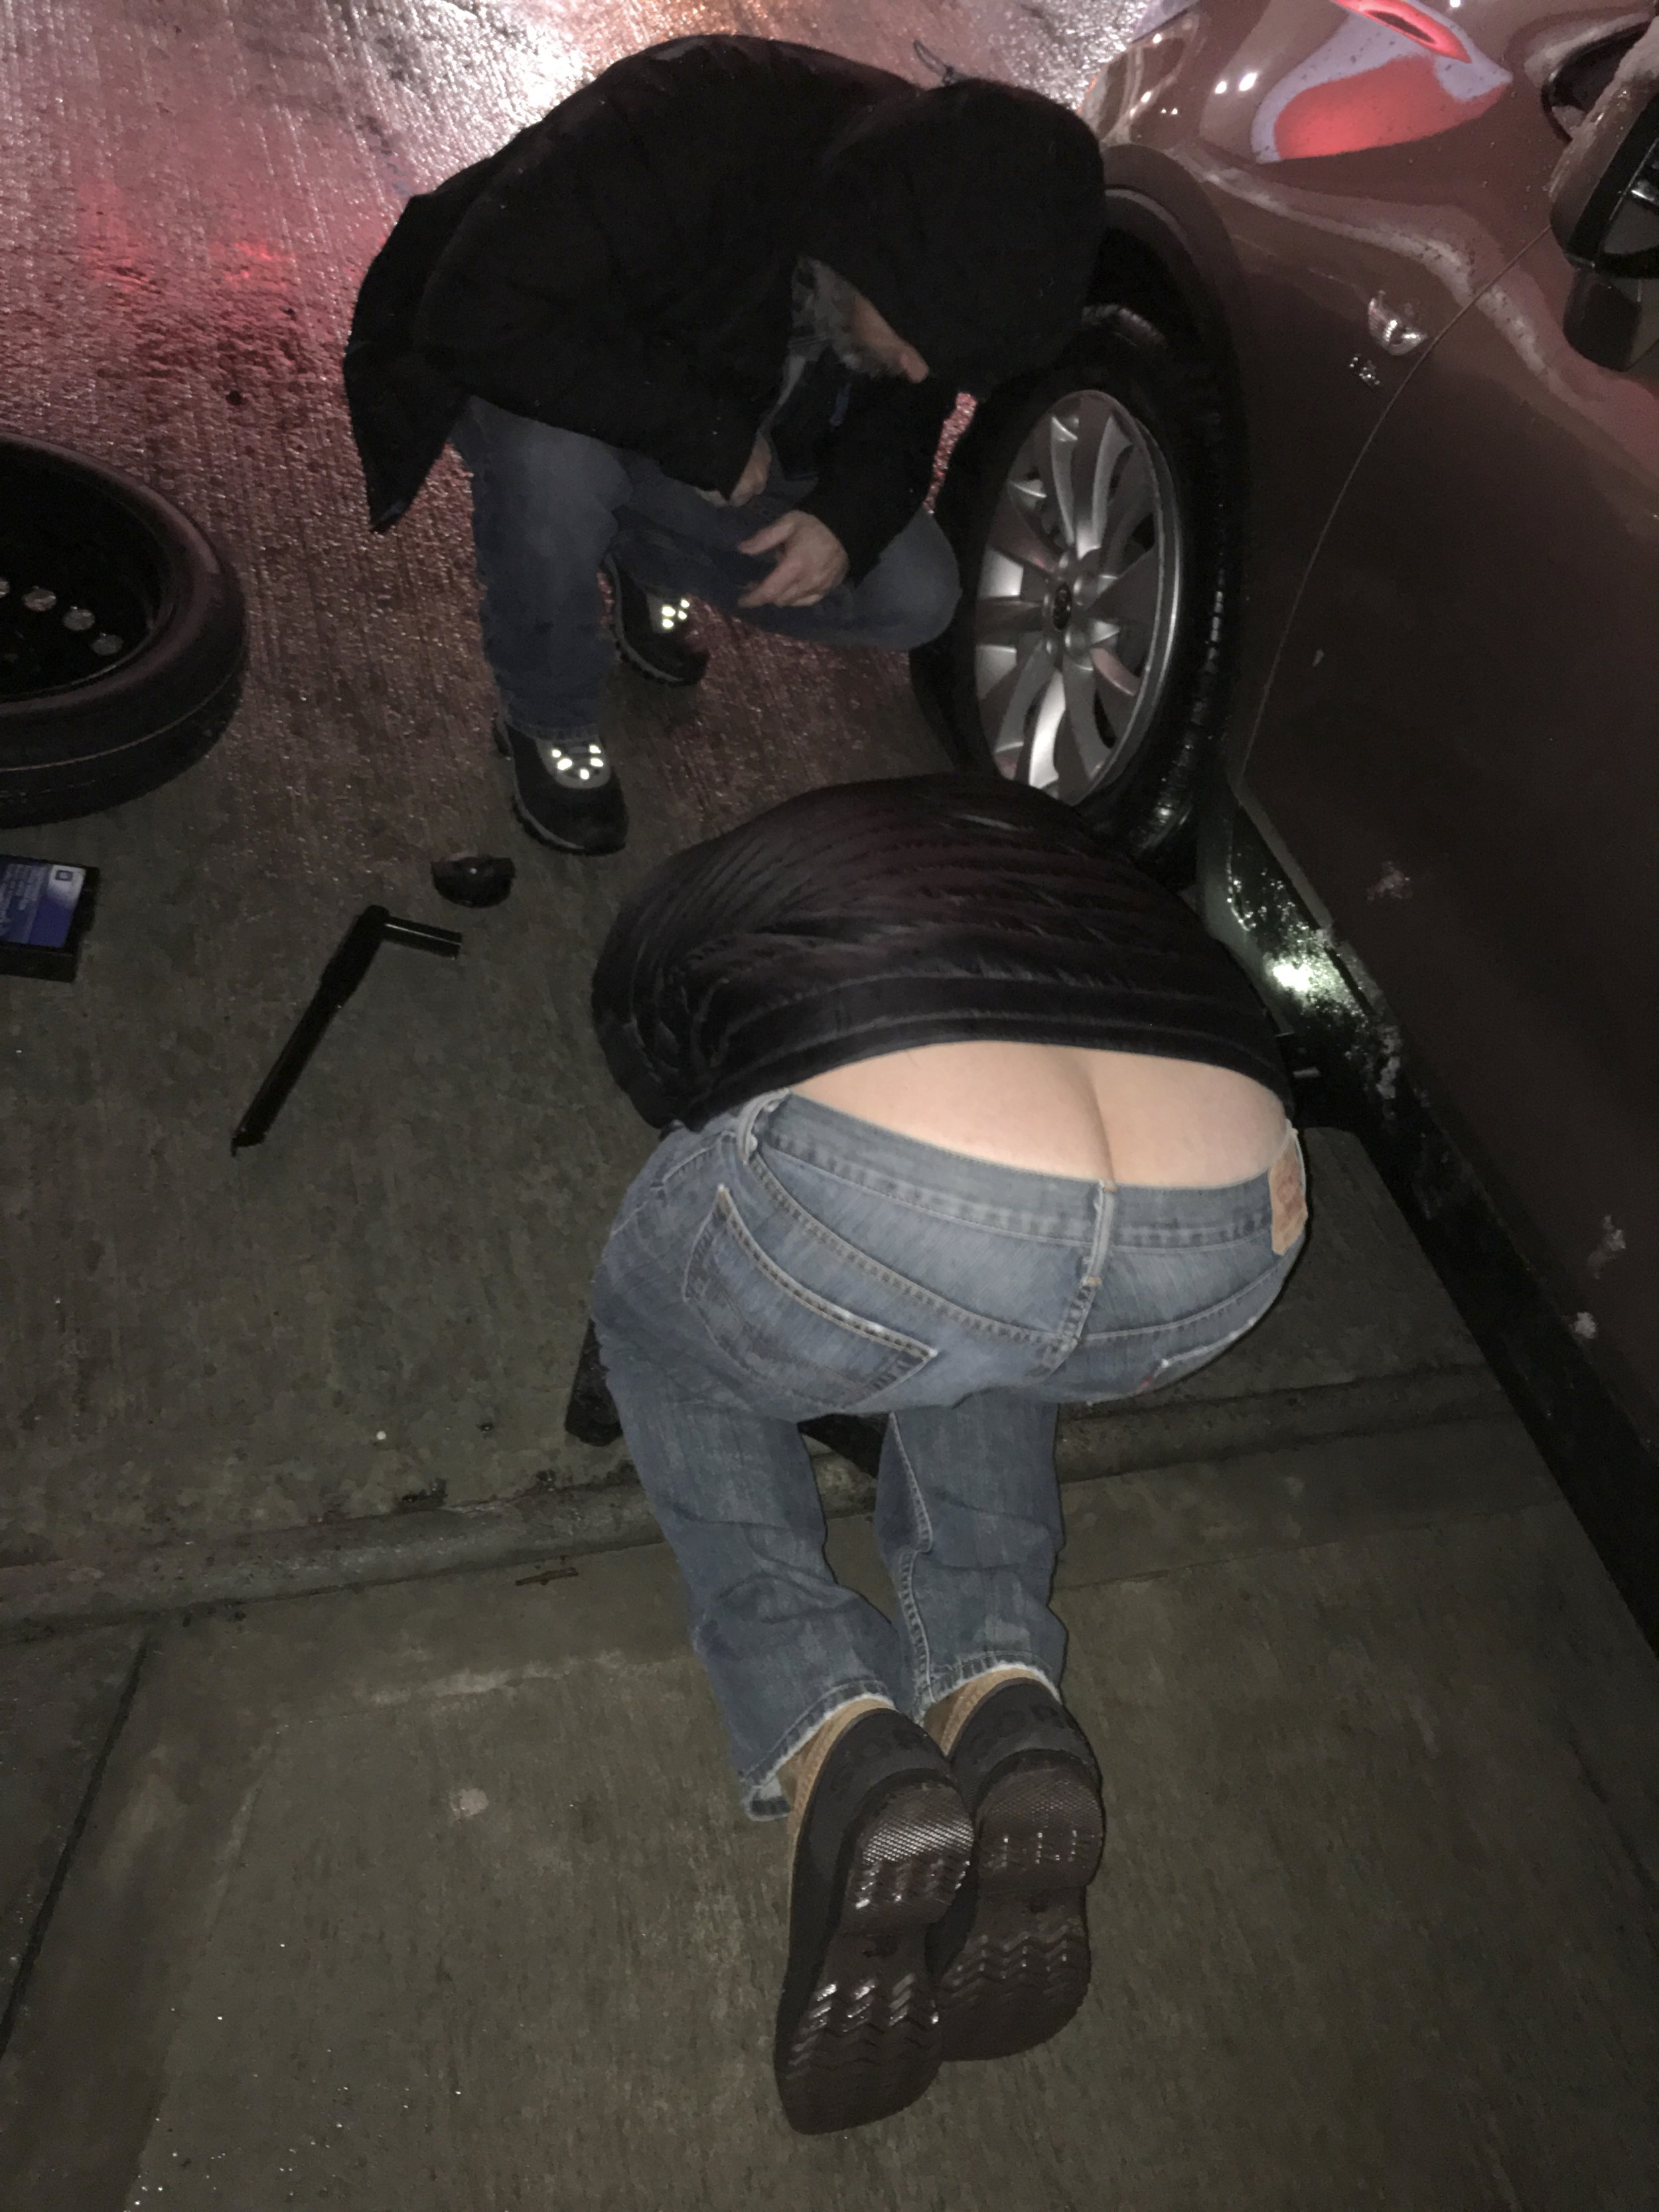 Paul and Mike changing the tire. Besides his apparent plumbing skills, Mike has some mechanic abilities.